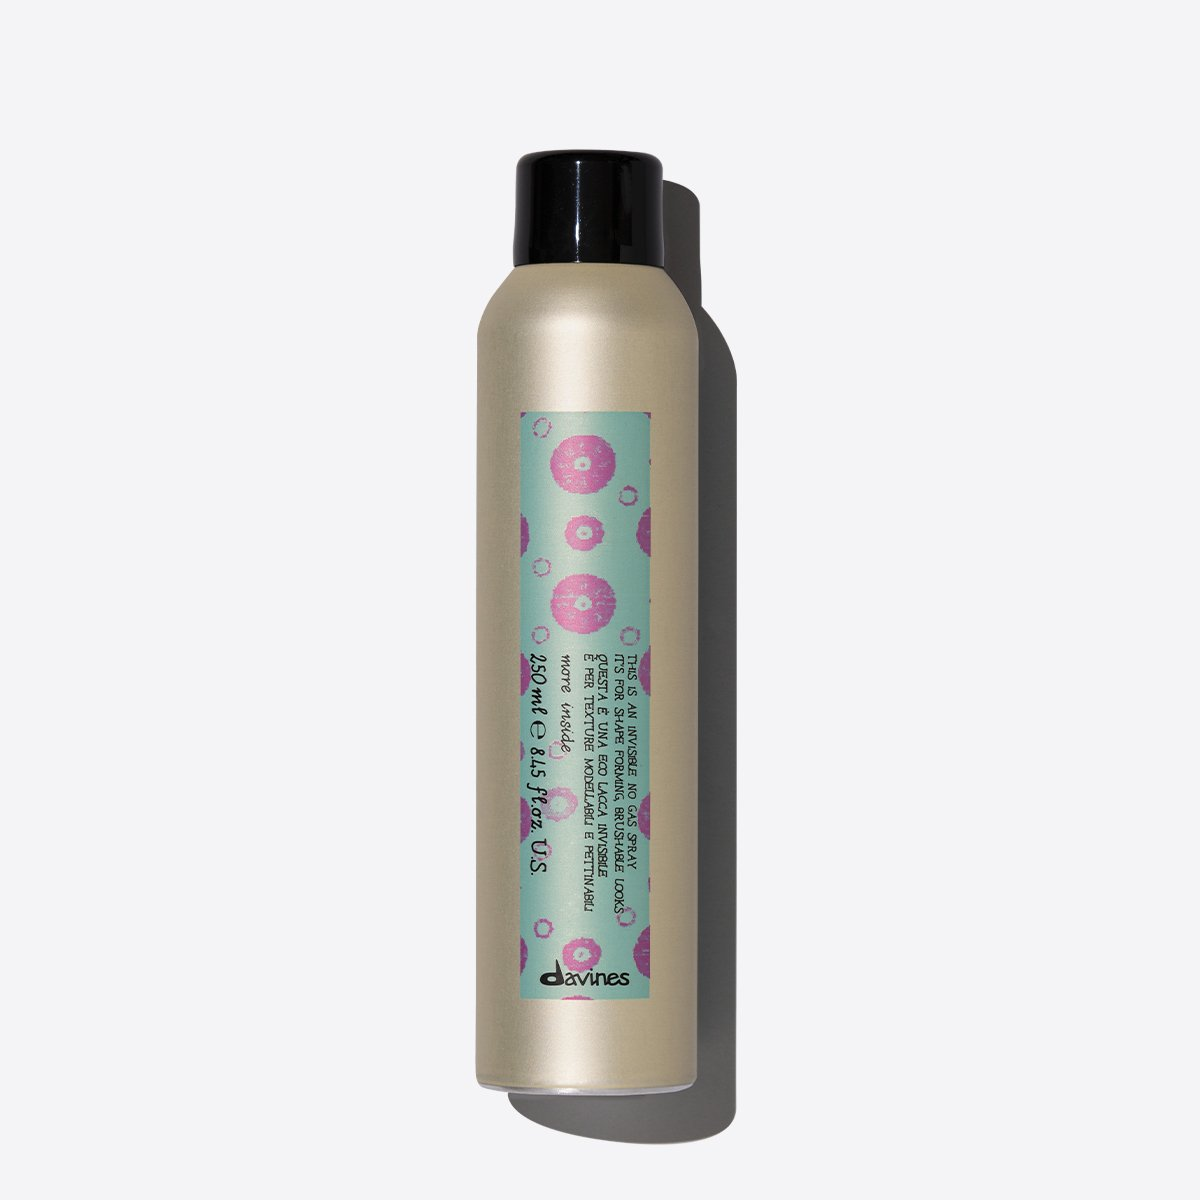 This is an Invisible No Gas Hair Spray by Davines